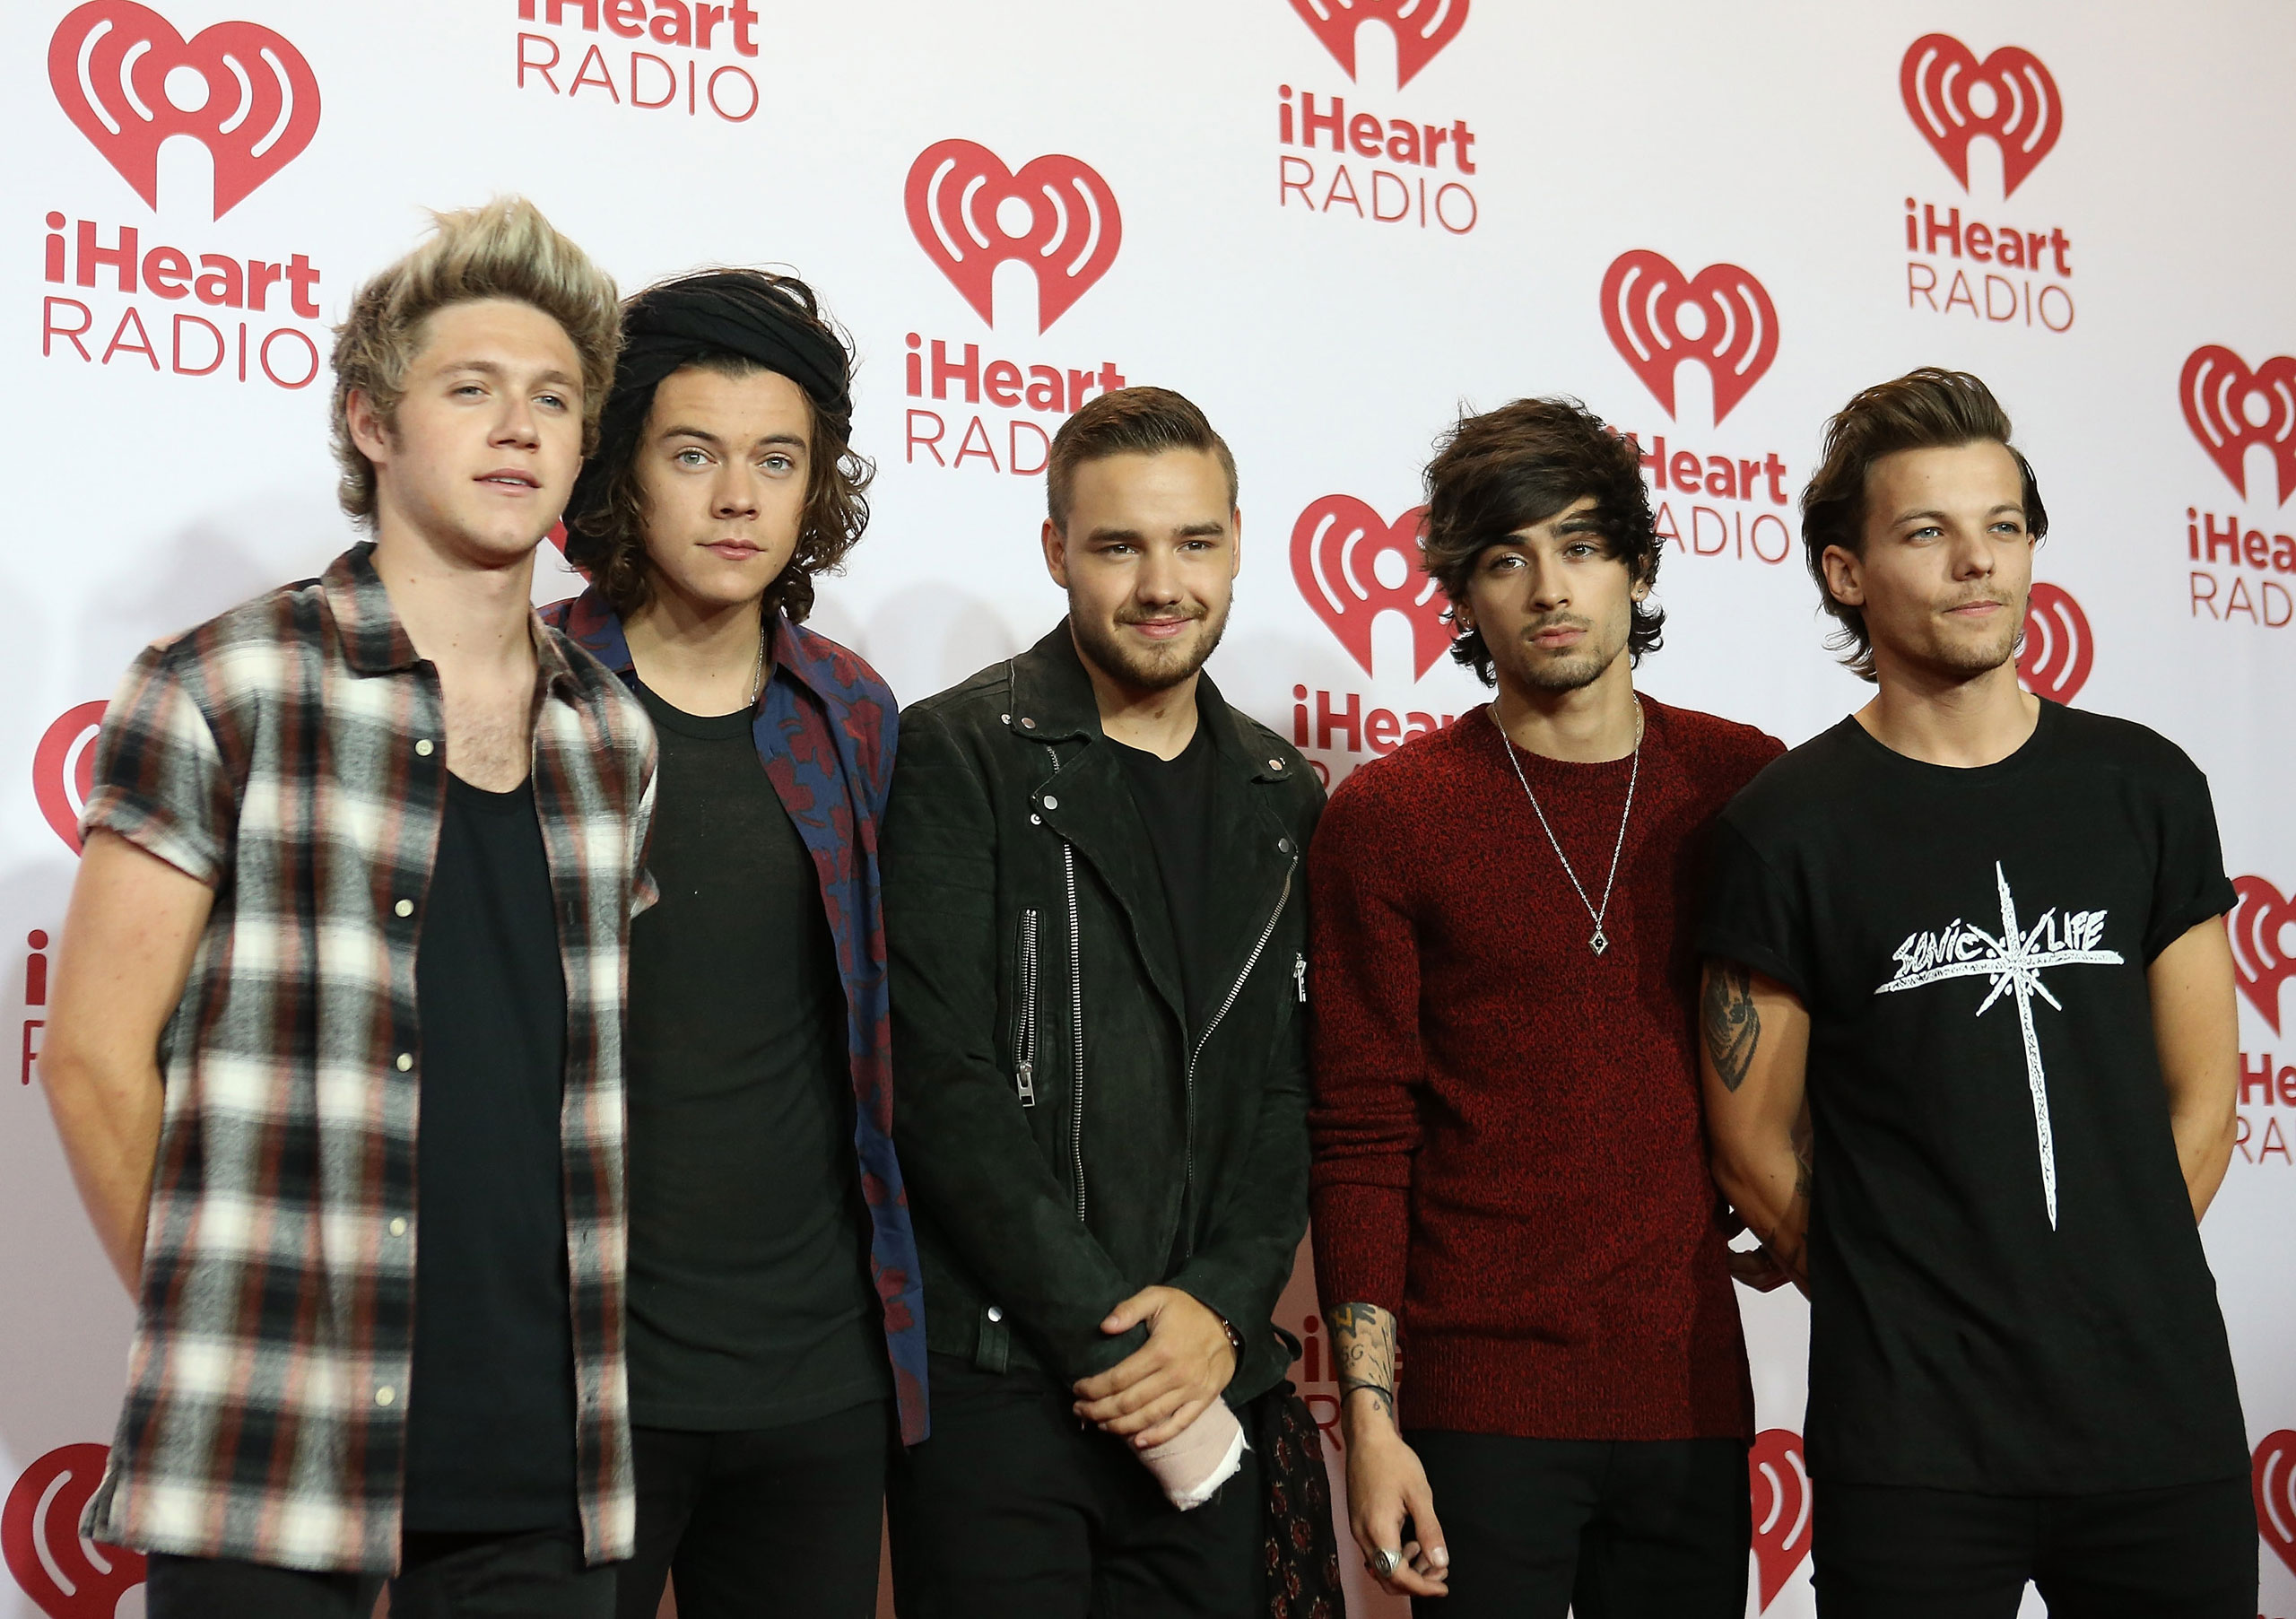 One Direction attend the iHeart Radio Music Festival at MGM Grand Resort and Casino on Sept. 20, 2014 in Las Vegas.